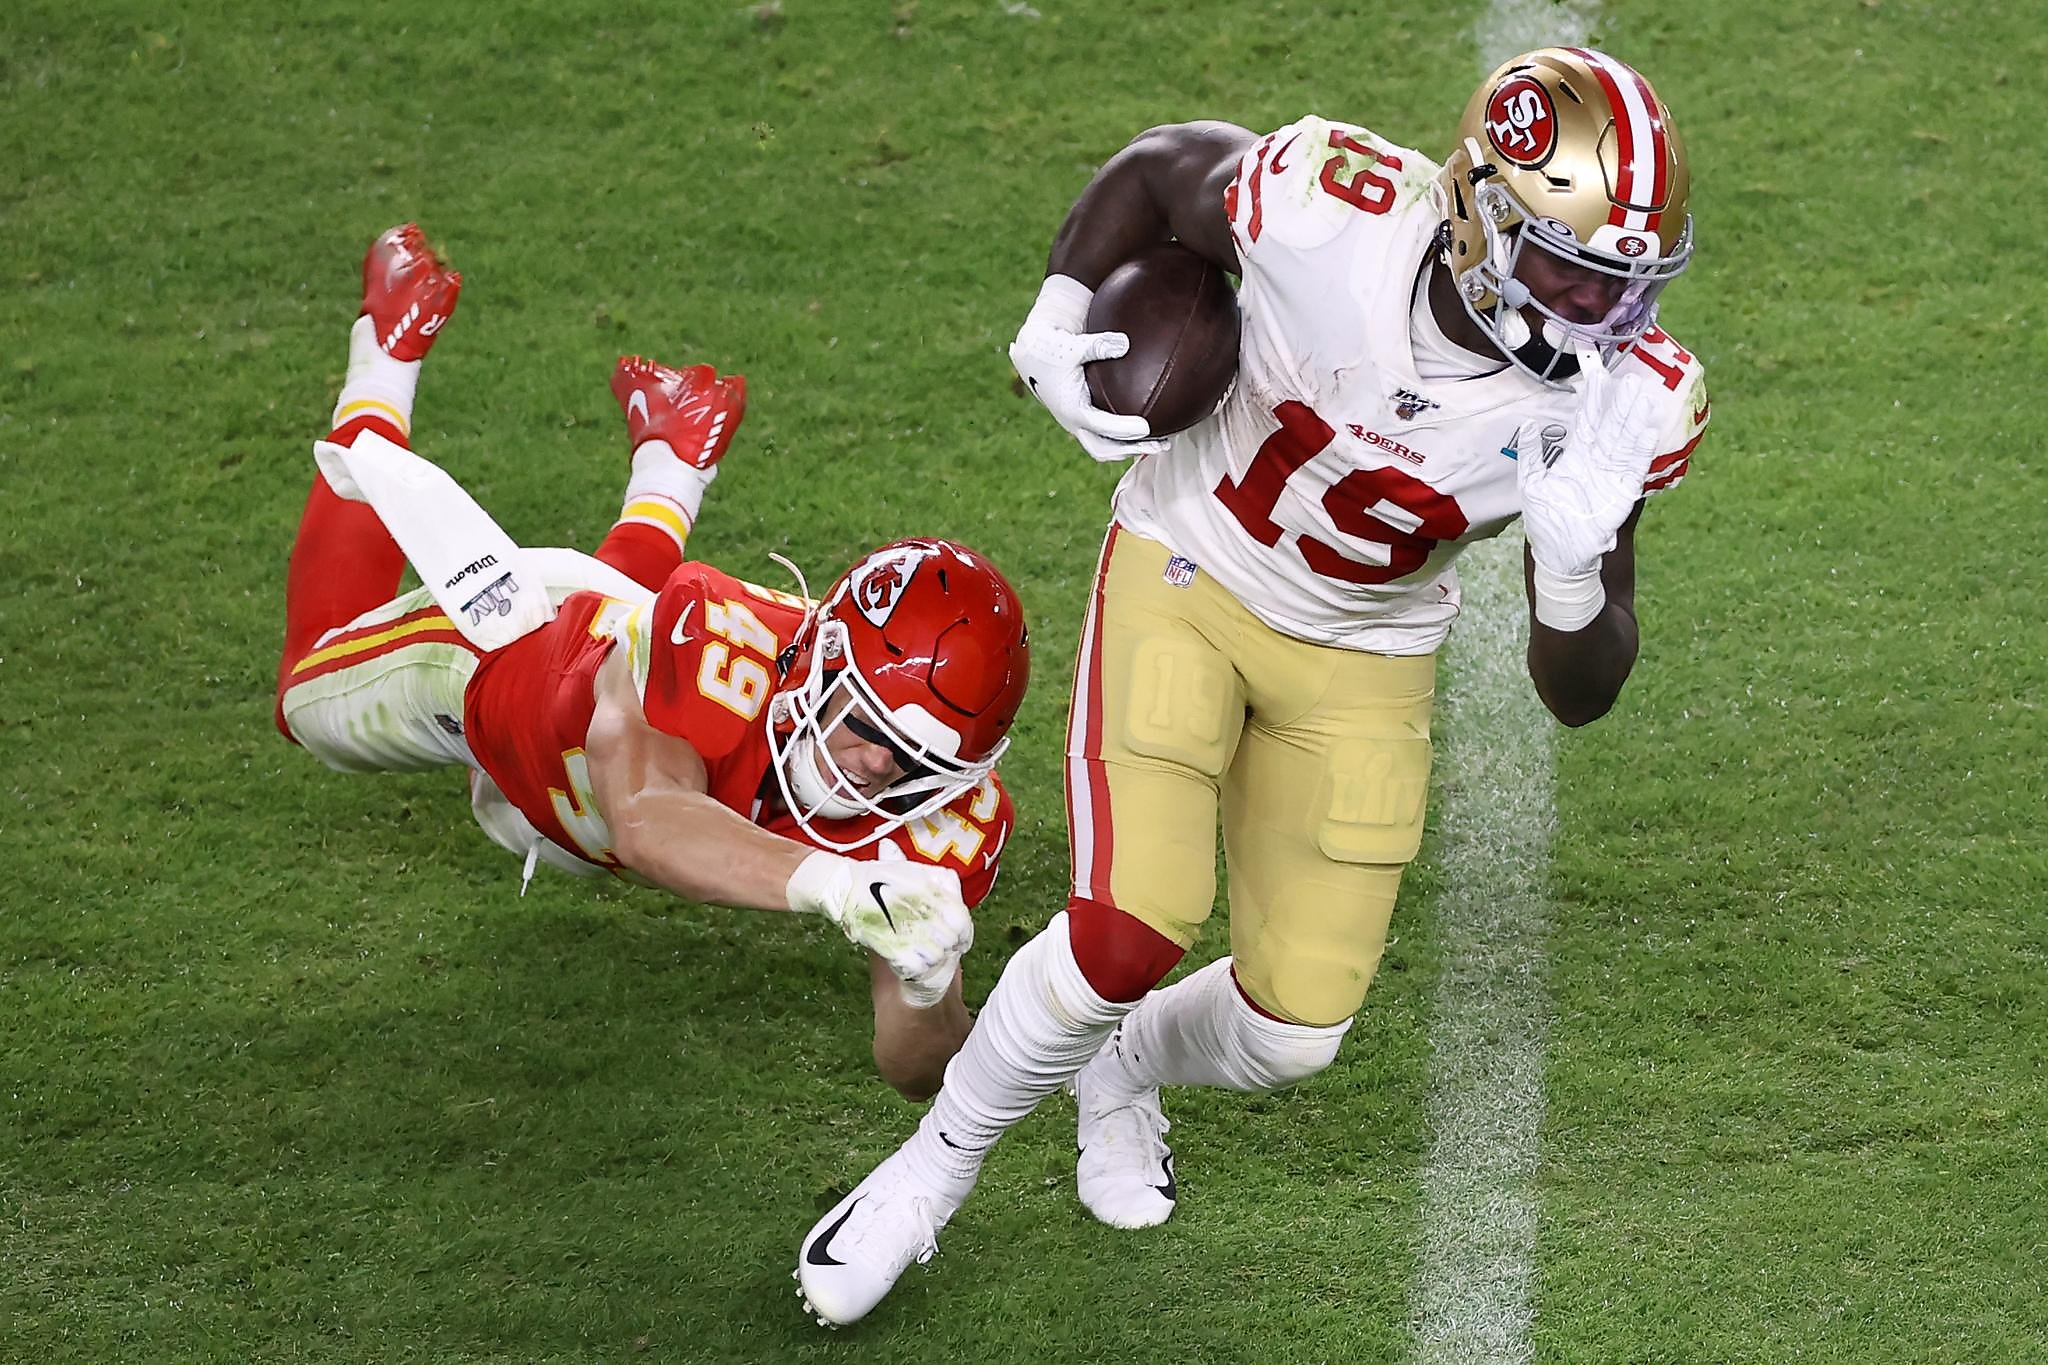 Future of 49ers' receiving corps is wide open - and that's not good